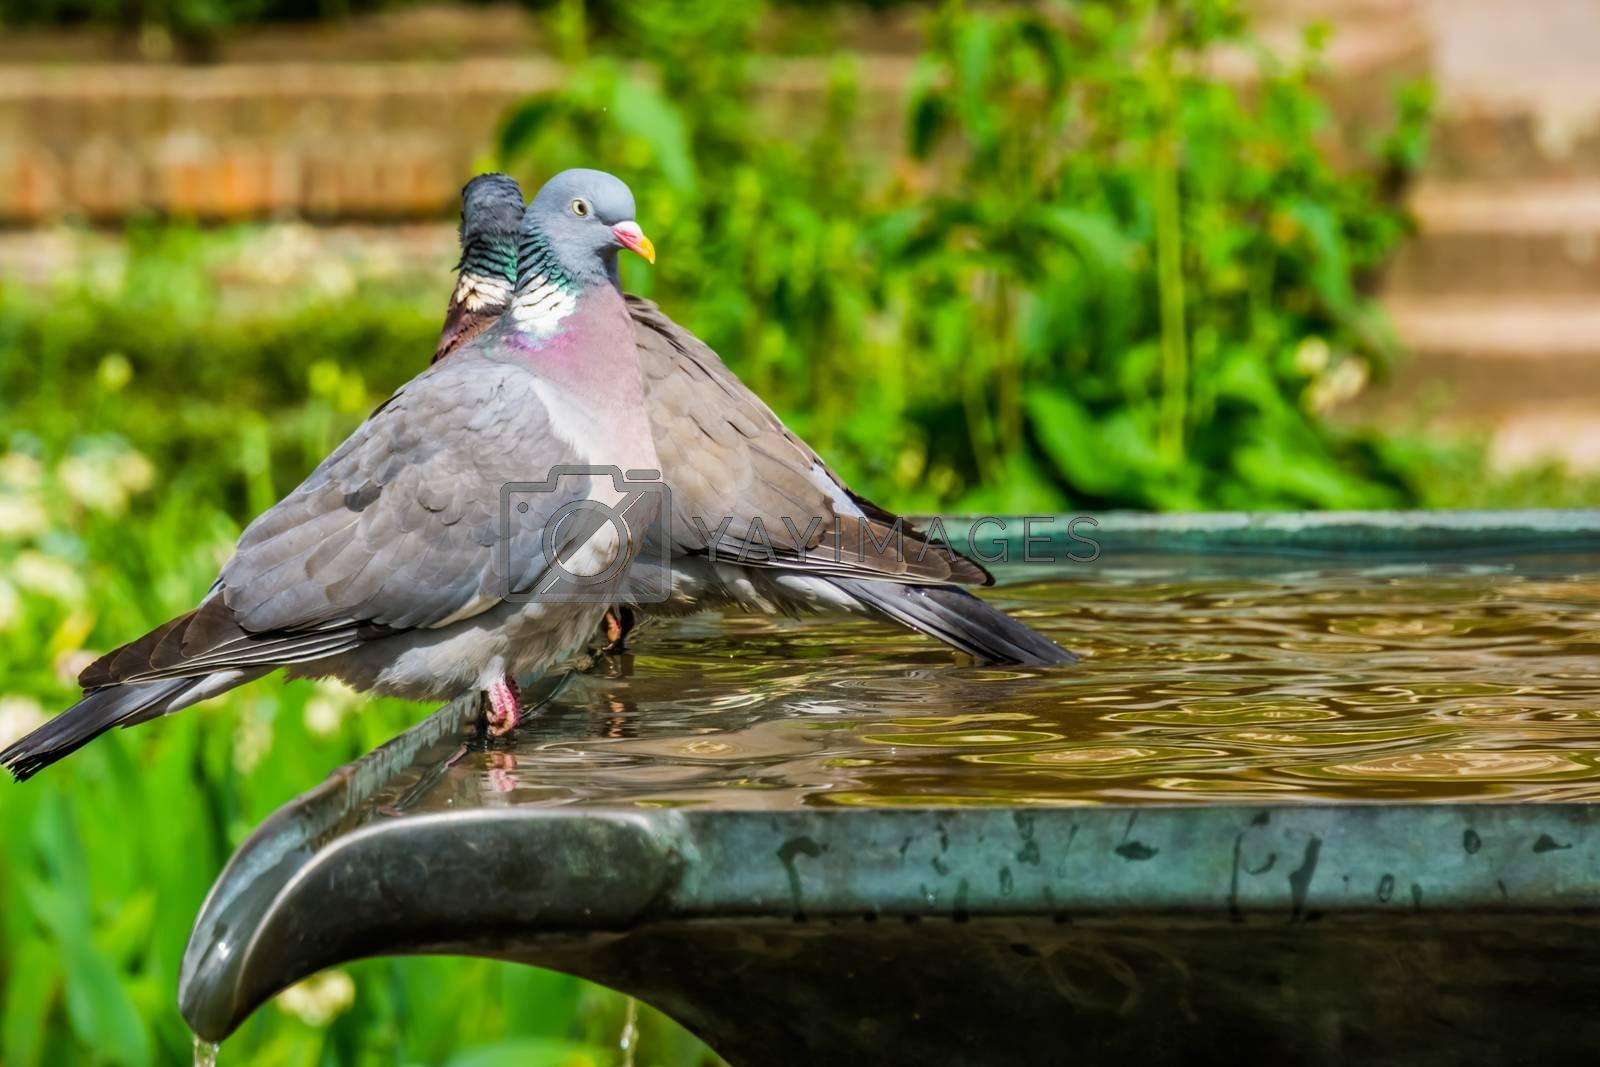 closeup of a common wood dove sitting on water fountain in a garden, common bird in Eurasia